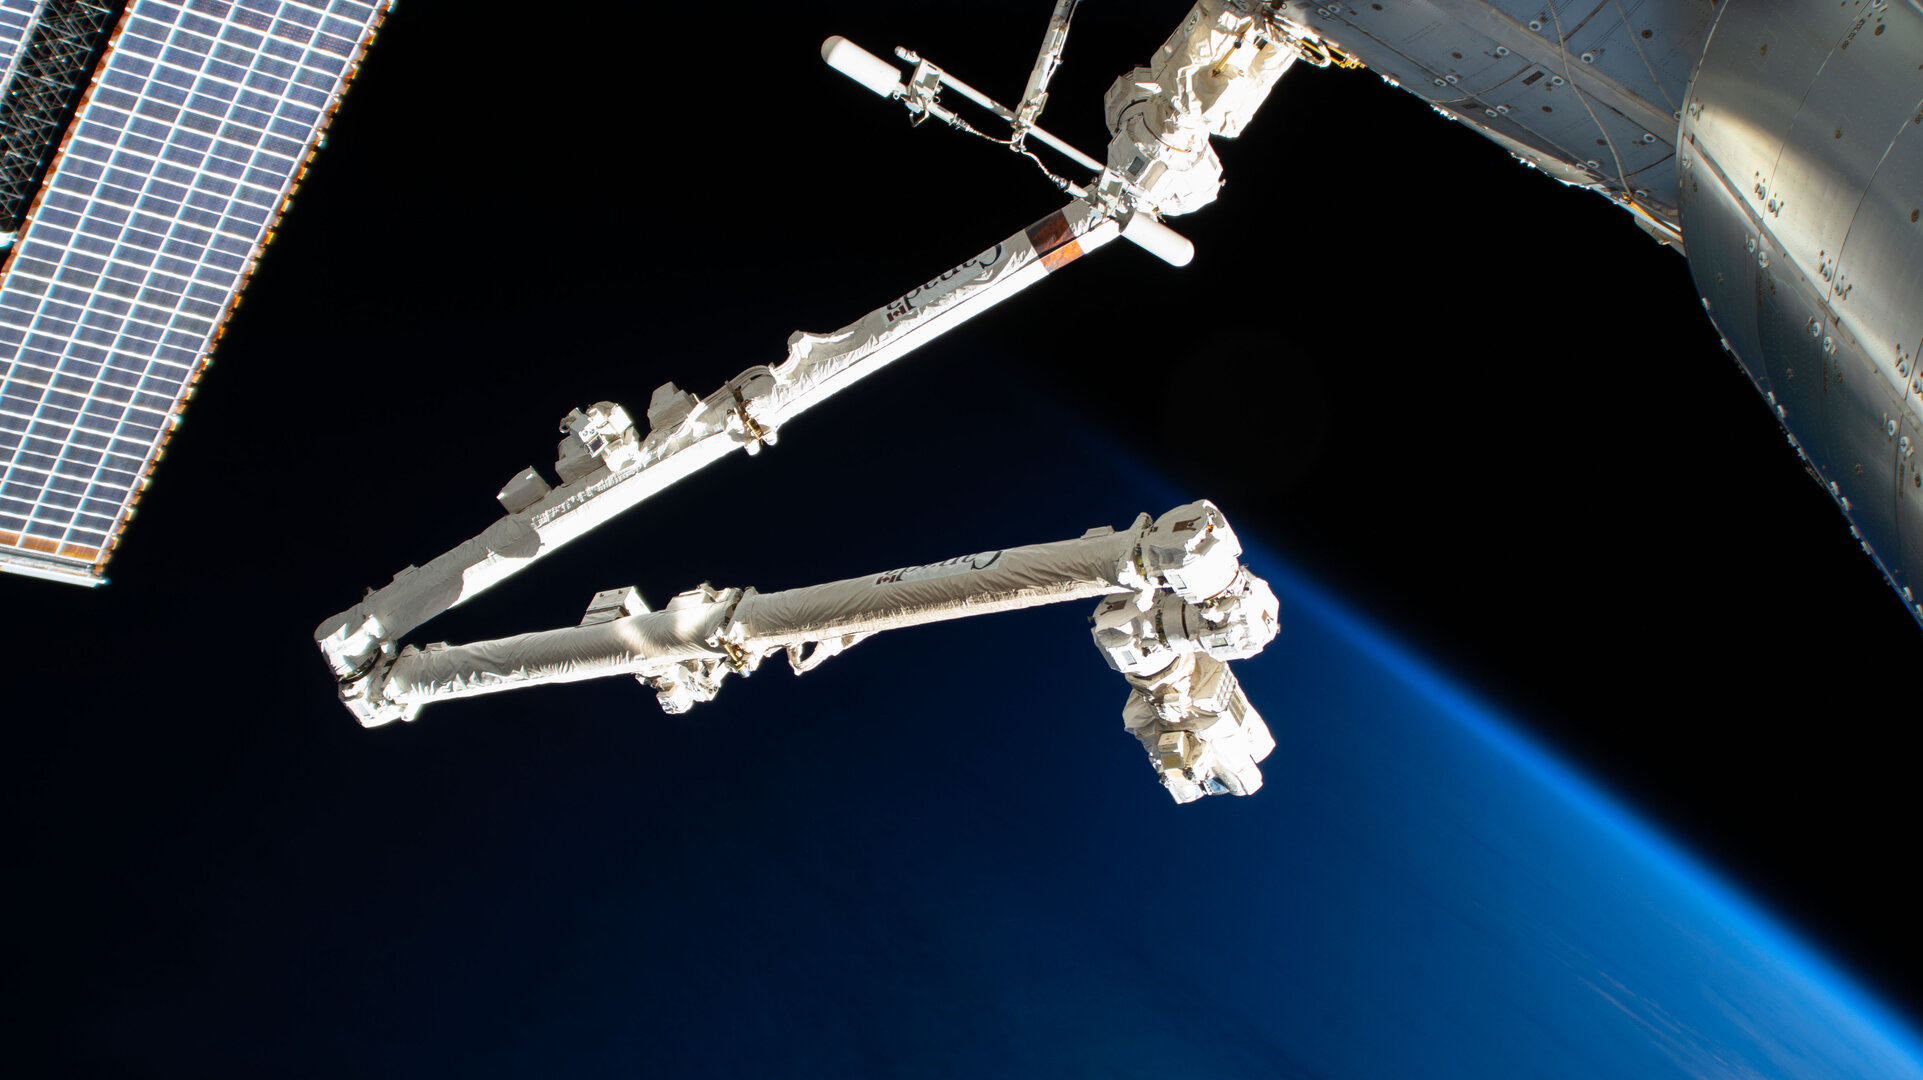 Canadarm2 robotic arm on the International Space Station